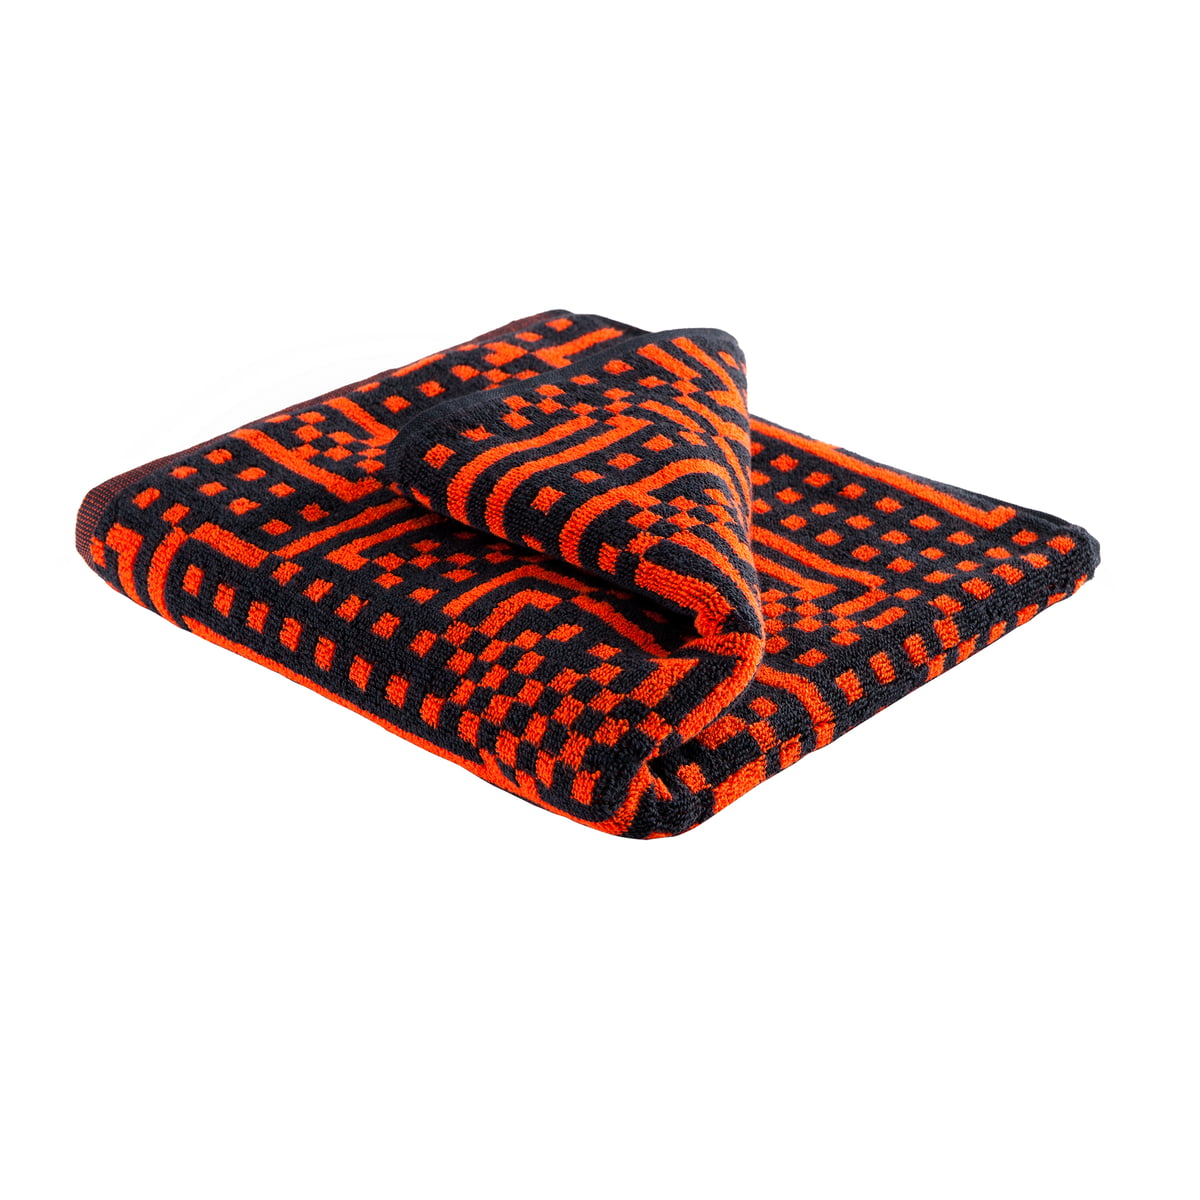 Handtücher Orange Zuzunaga Route Black And Red Orange Handtuch 50 100 Cm